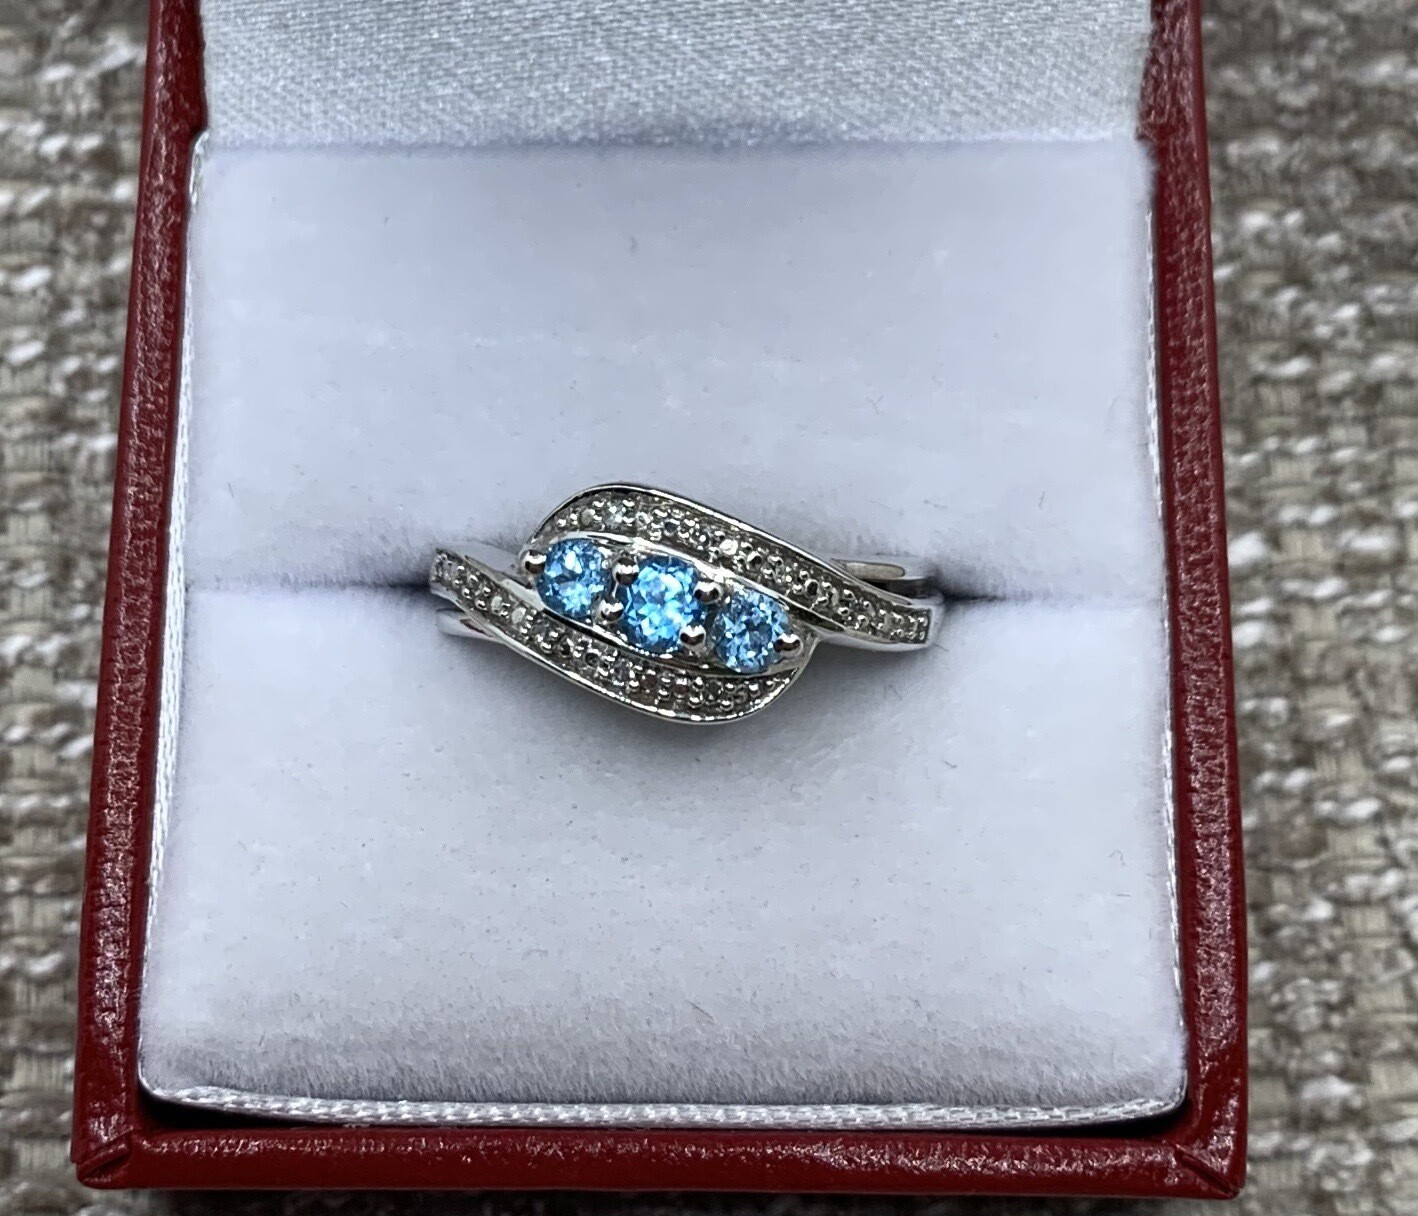 3 Blue Topaz With Diamond Accent Ring